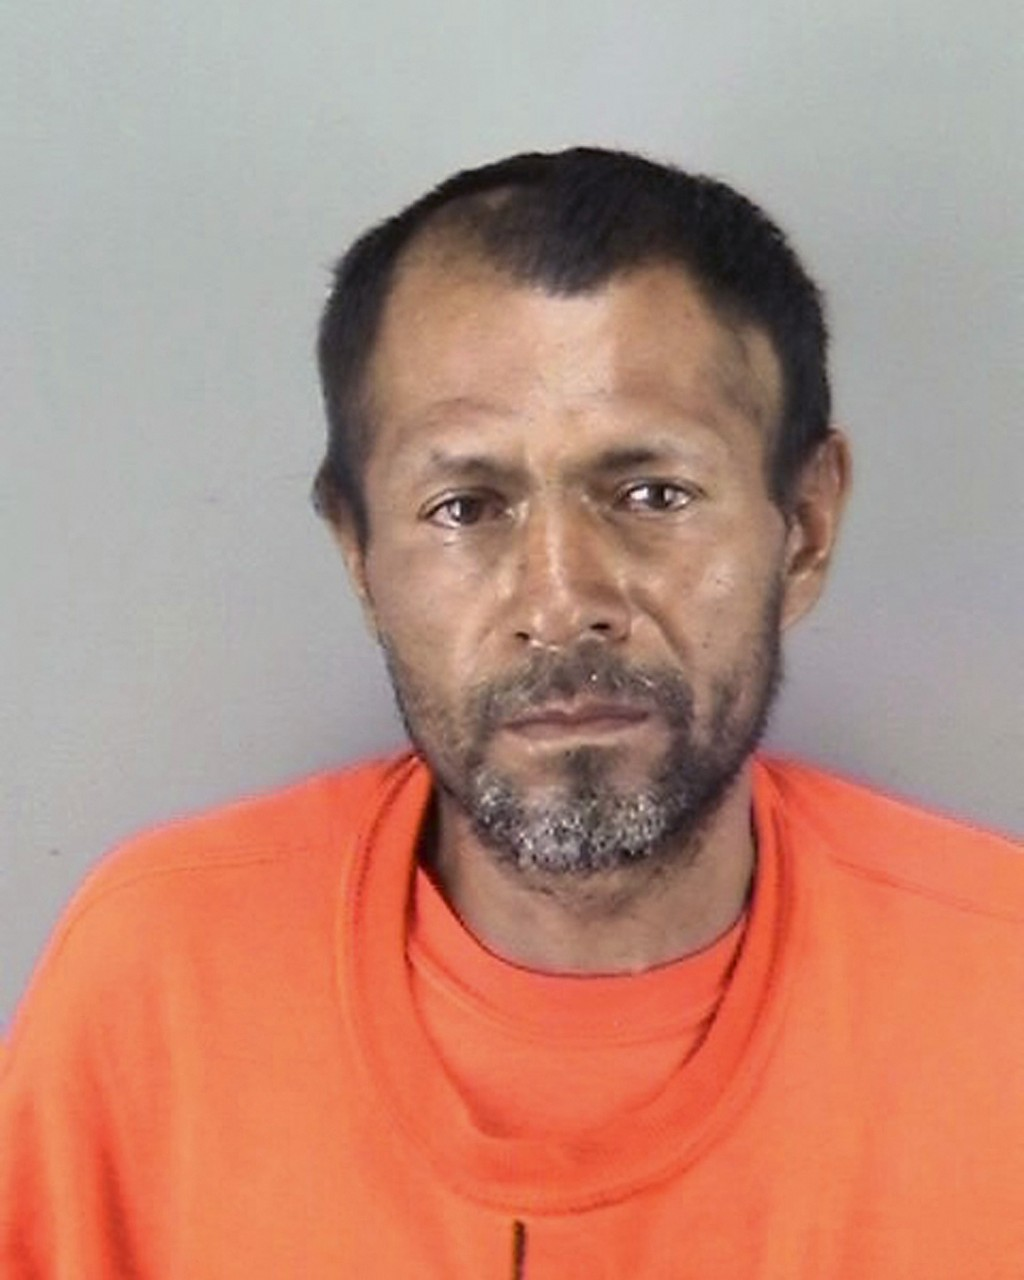 FILE - This undated file booking photo provided by the San Francisco Police Department shows Jose Ines Garcia Zarate, a homeless undocumented immigran